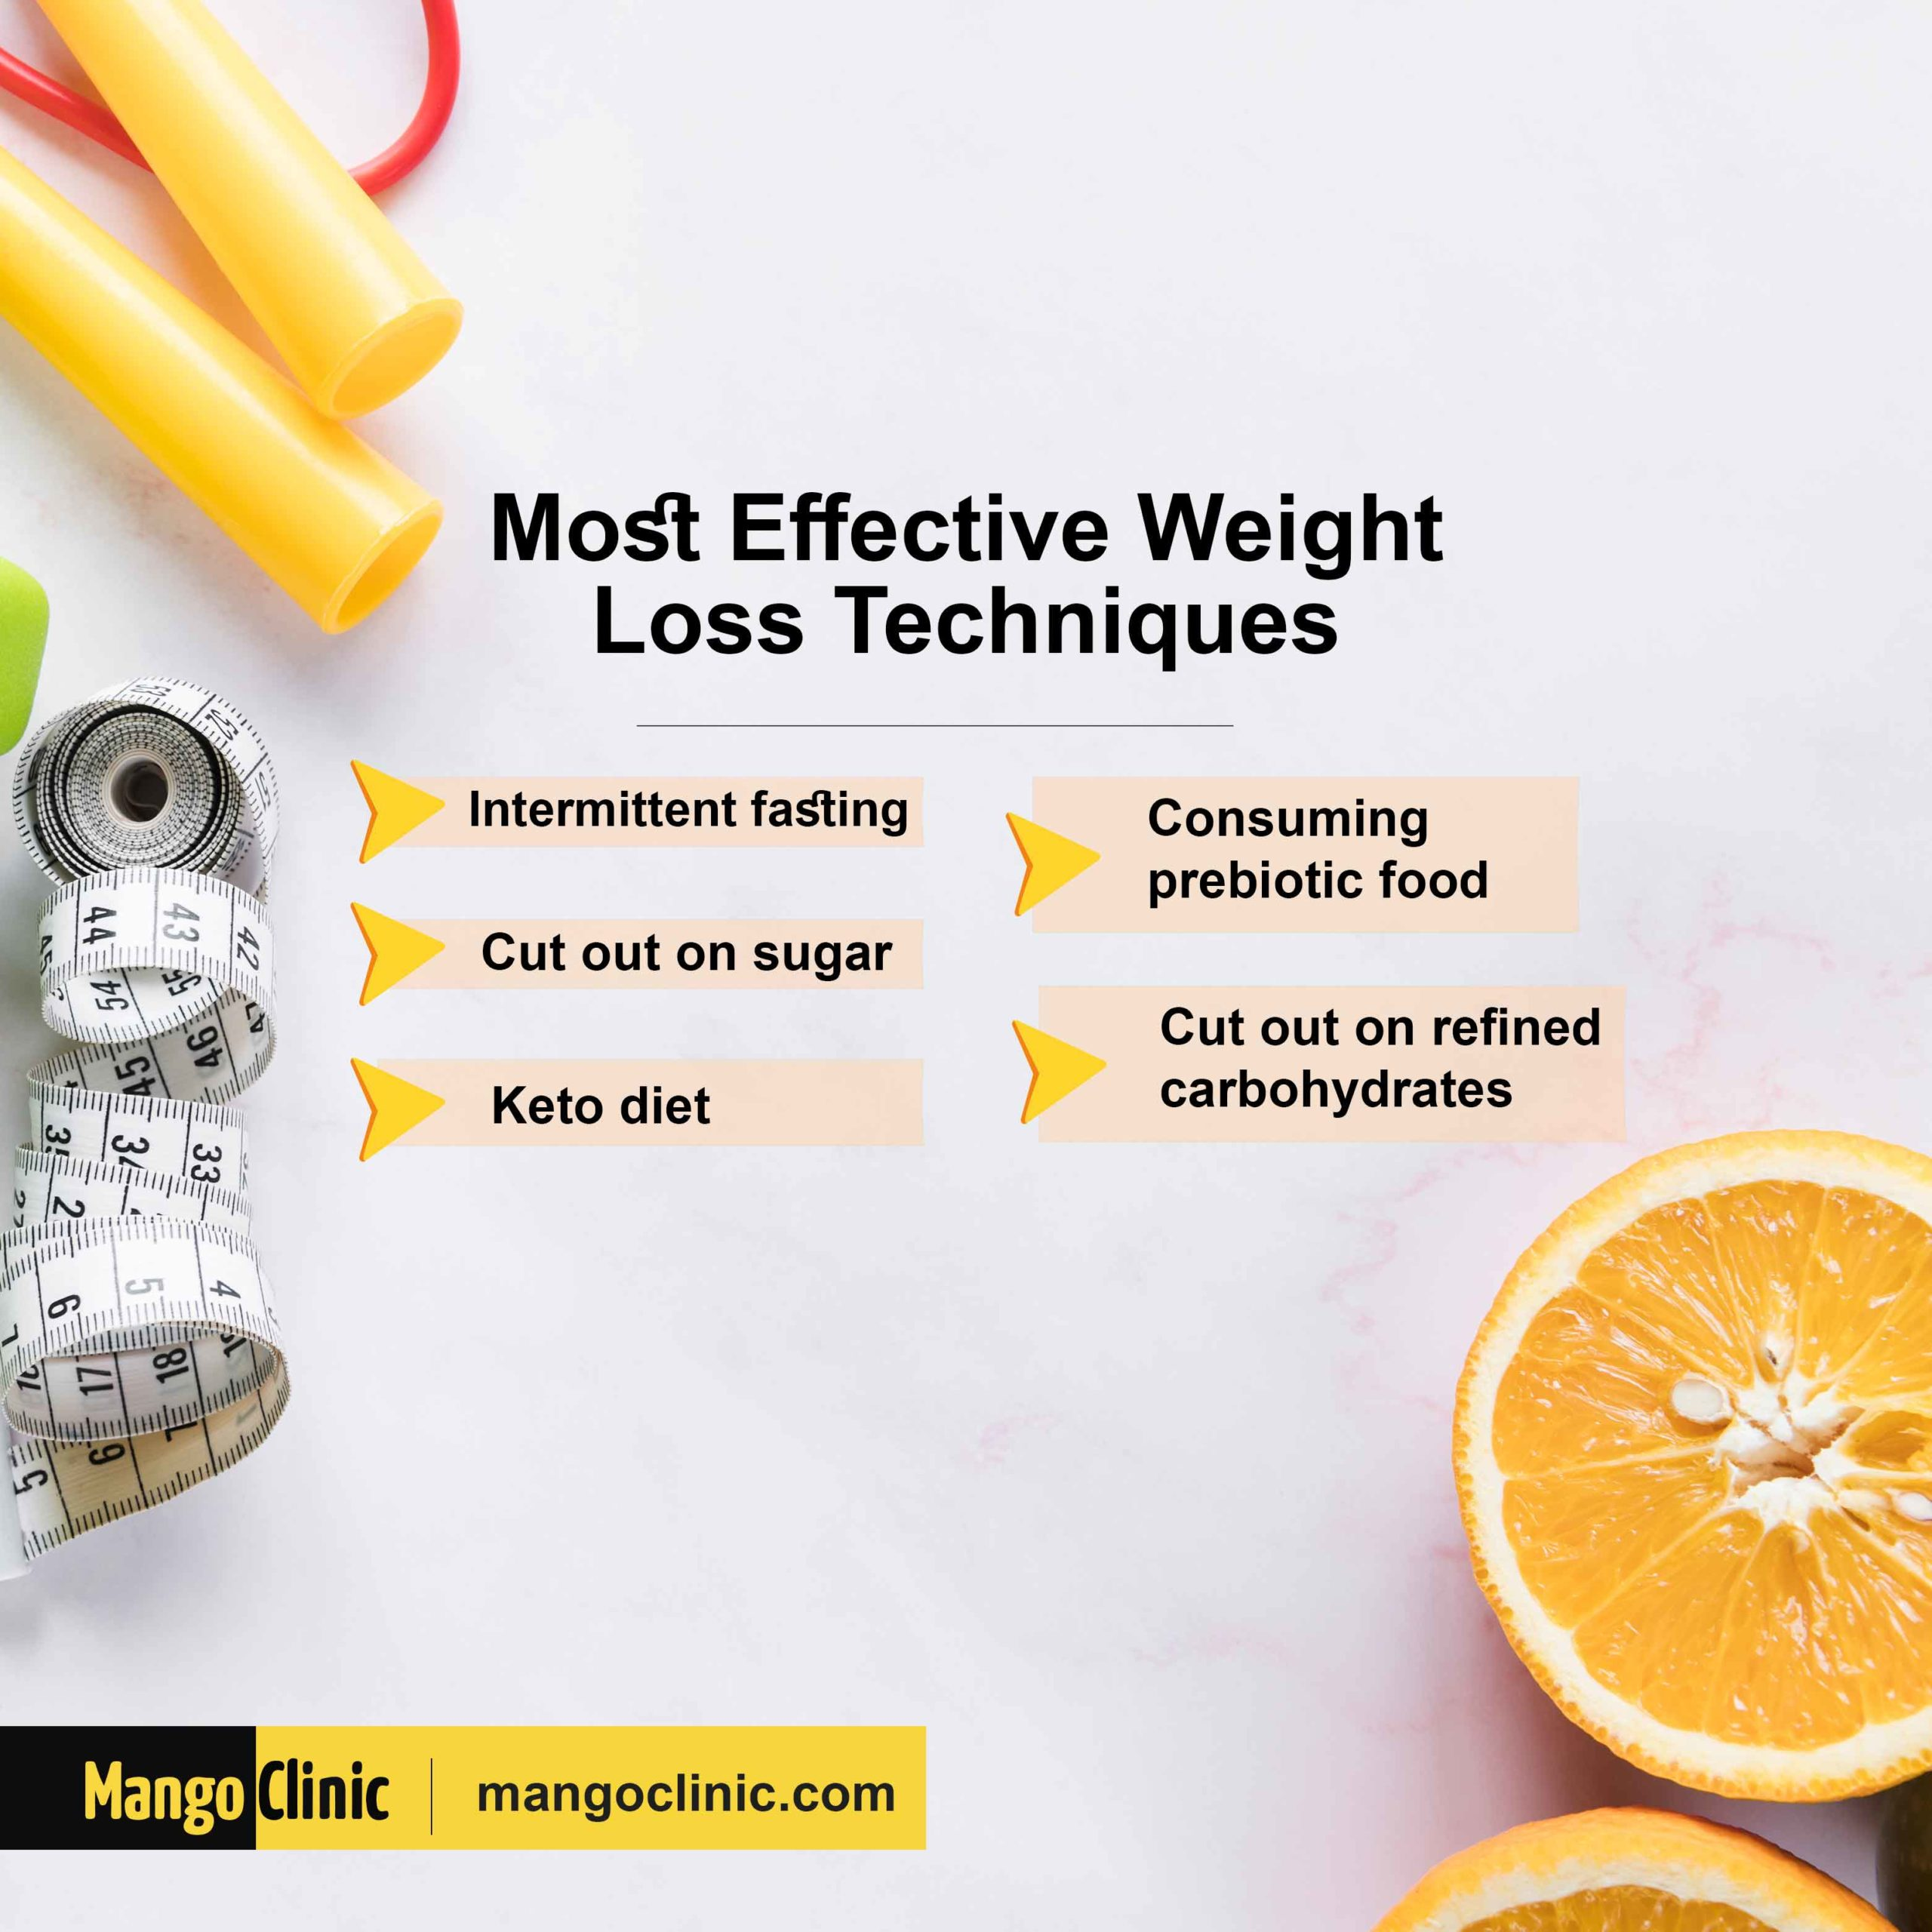 Most Effective Weight Loss Techniques